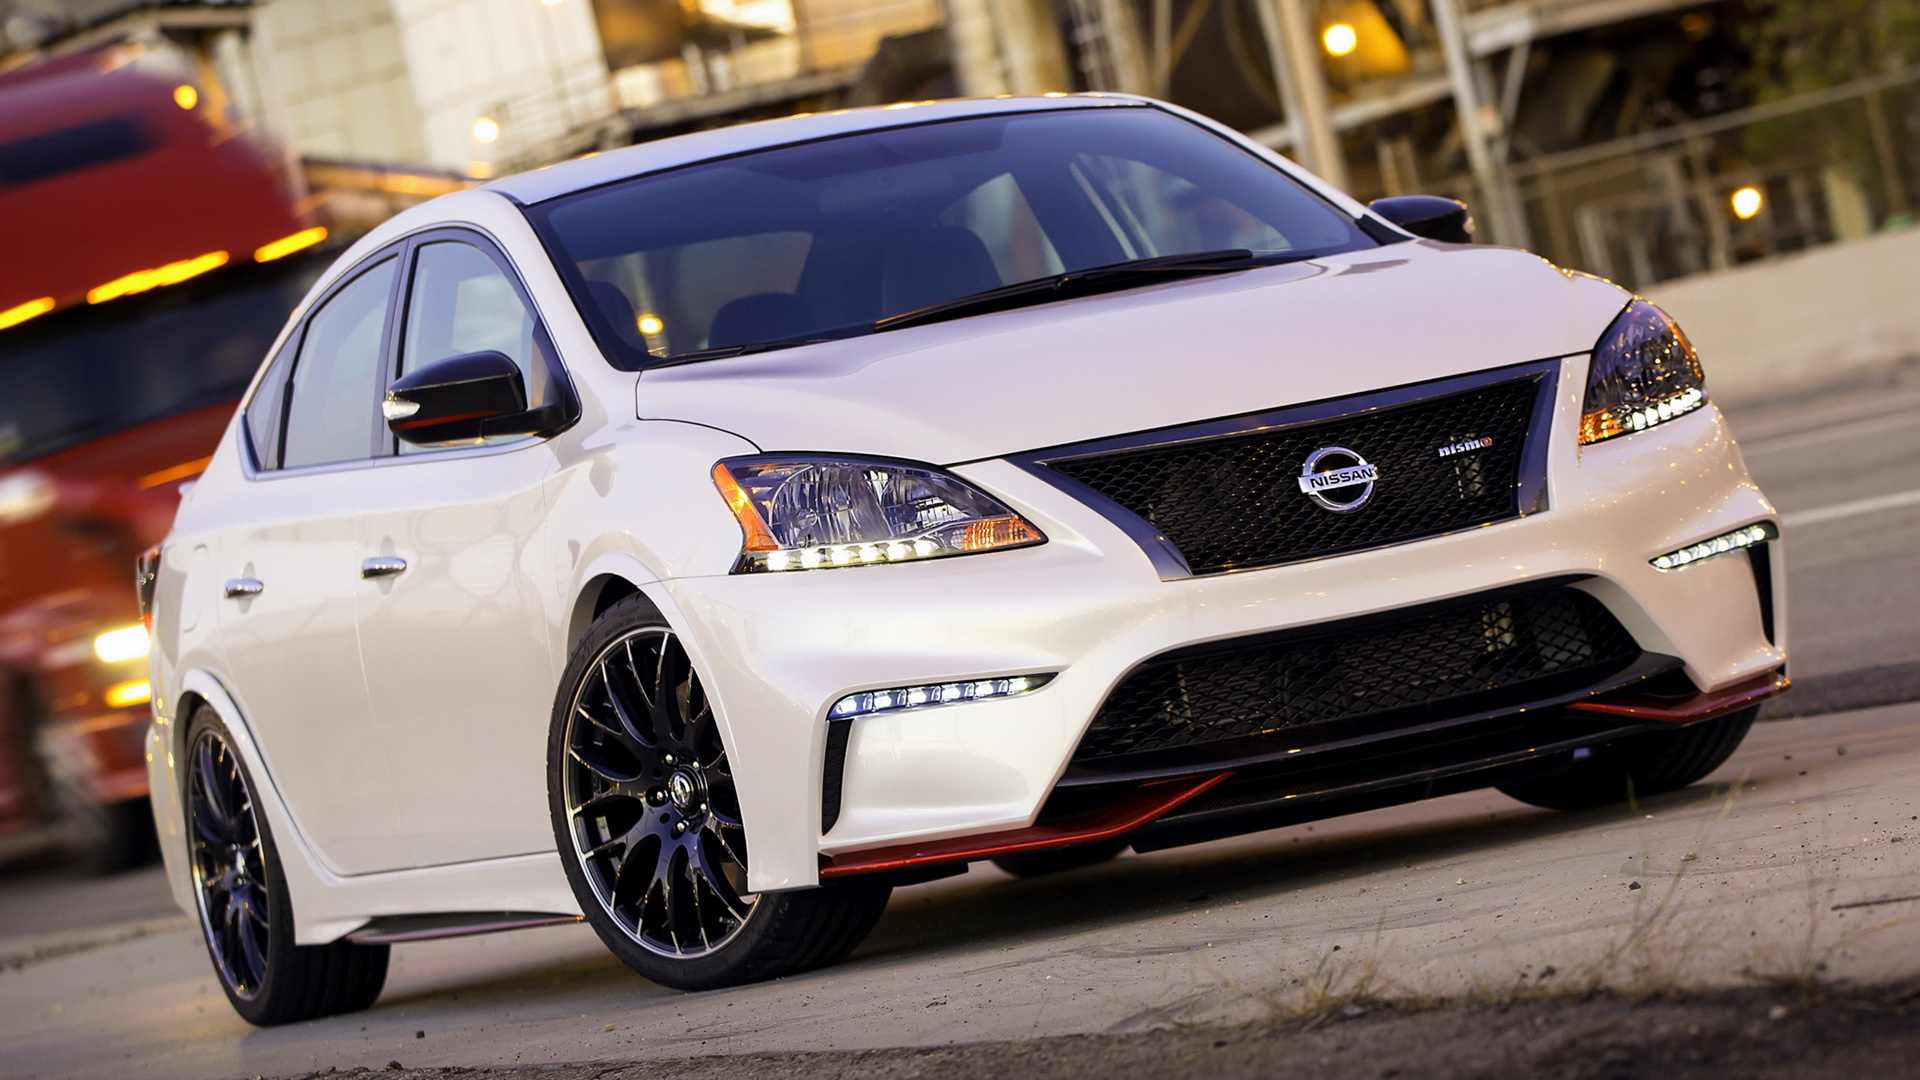 2018 Nissan Sentra Nismo Concept | Car Photos Catalog 2018